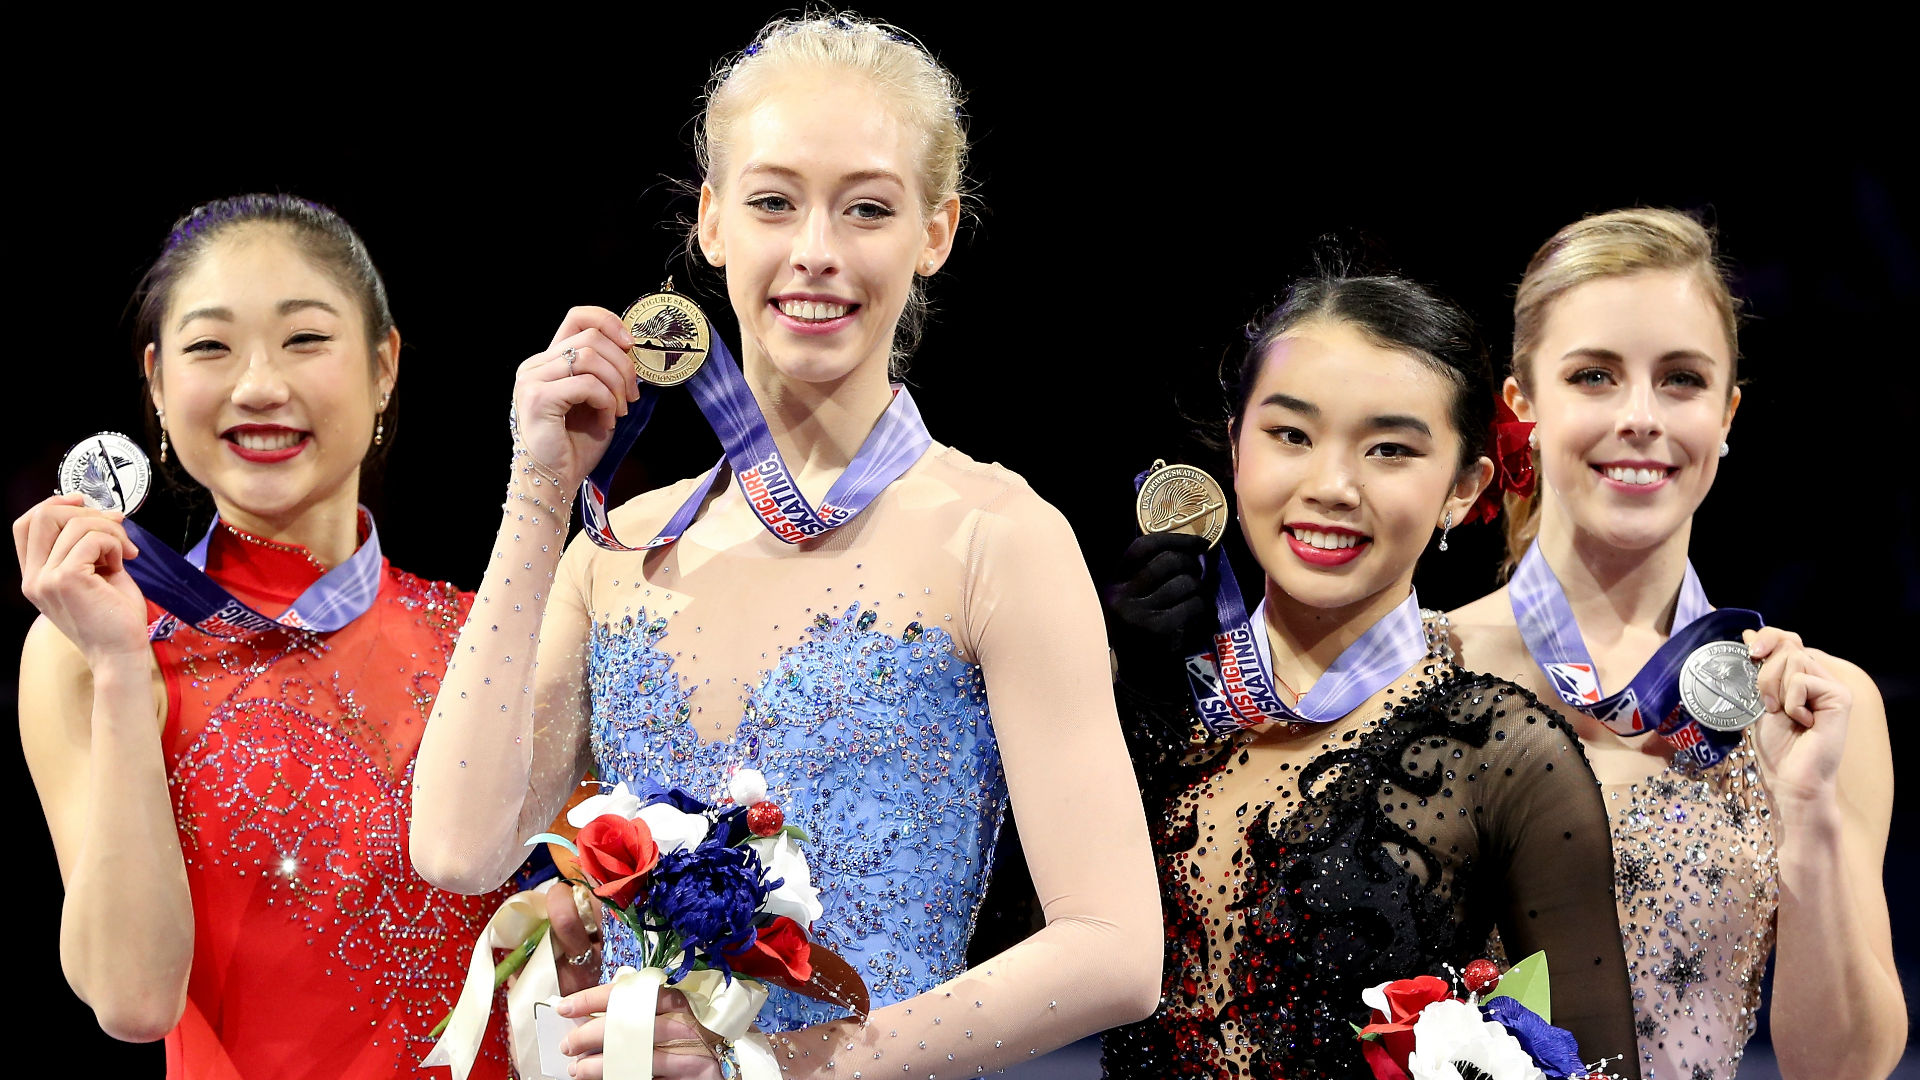 Tennell wins USA skating title, homes in on Olympic berth